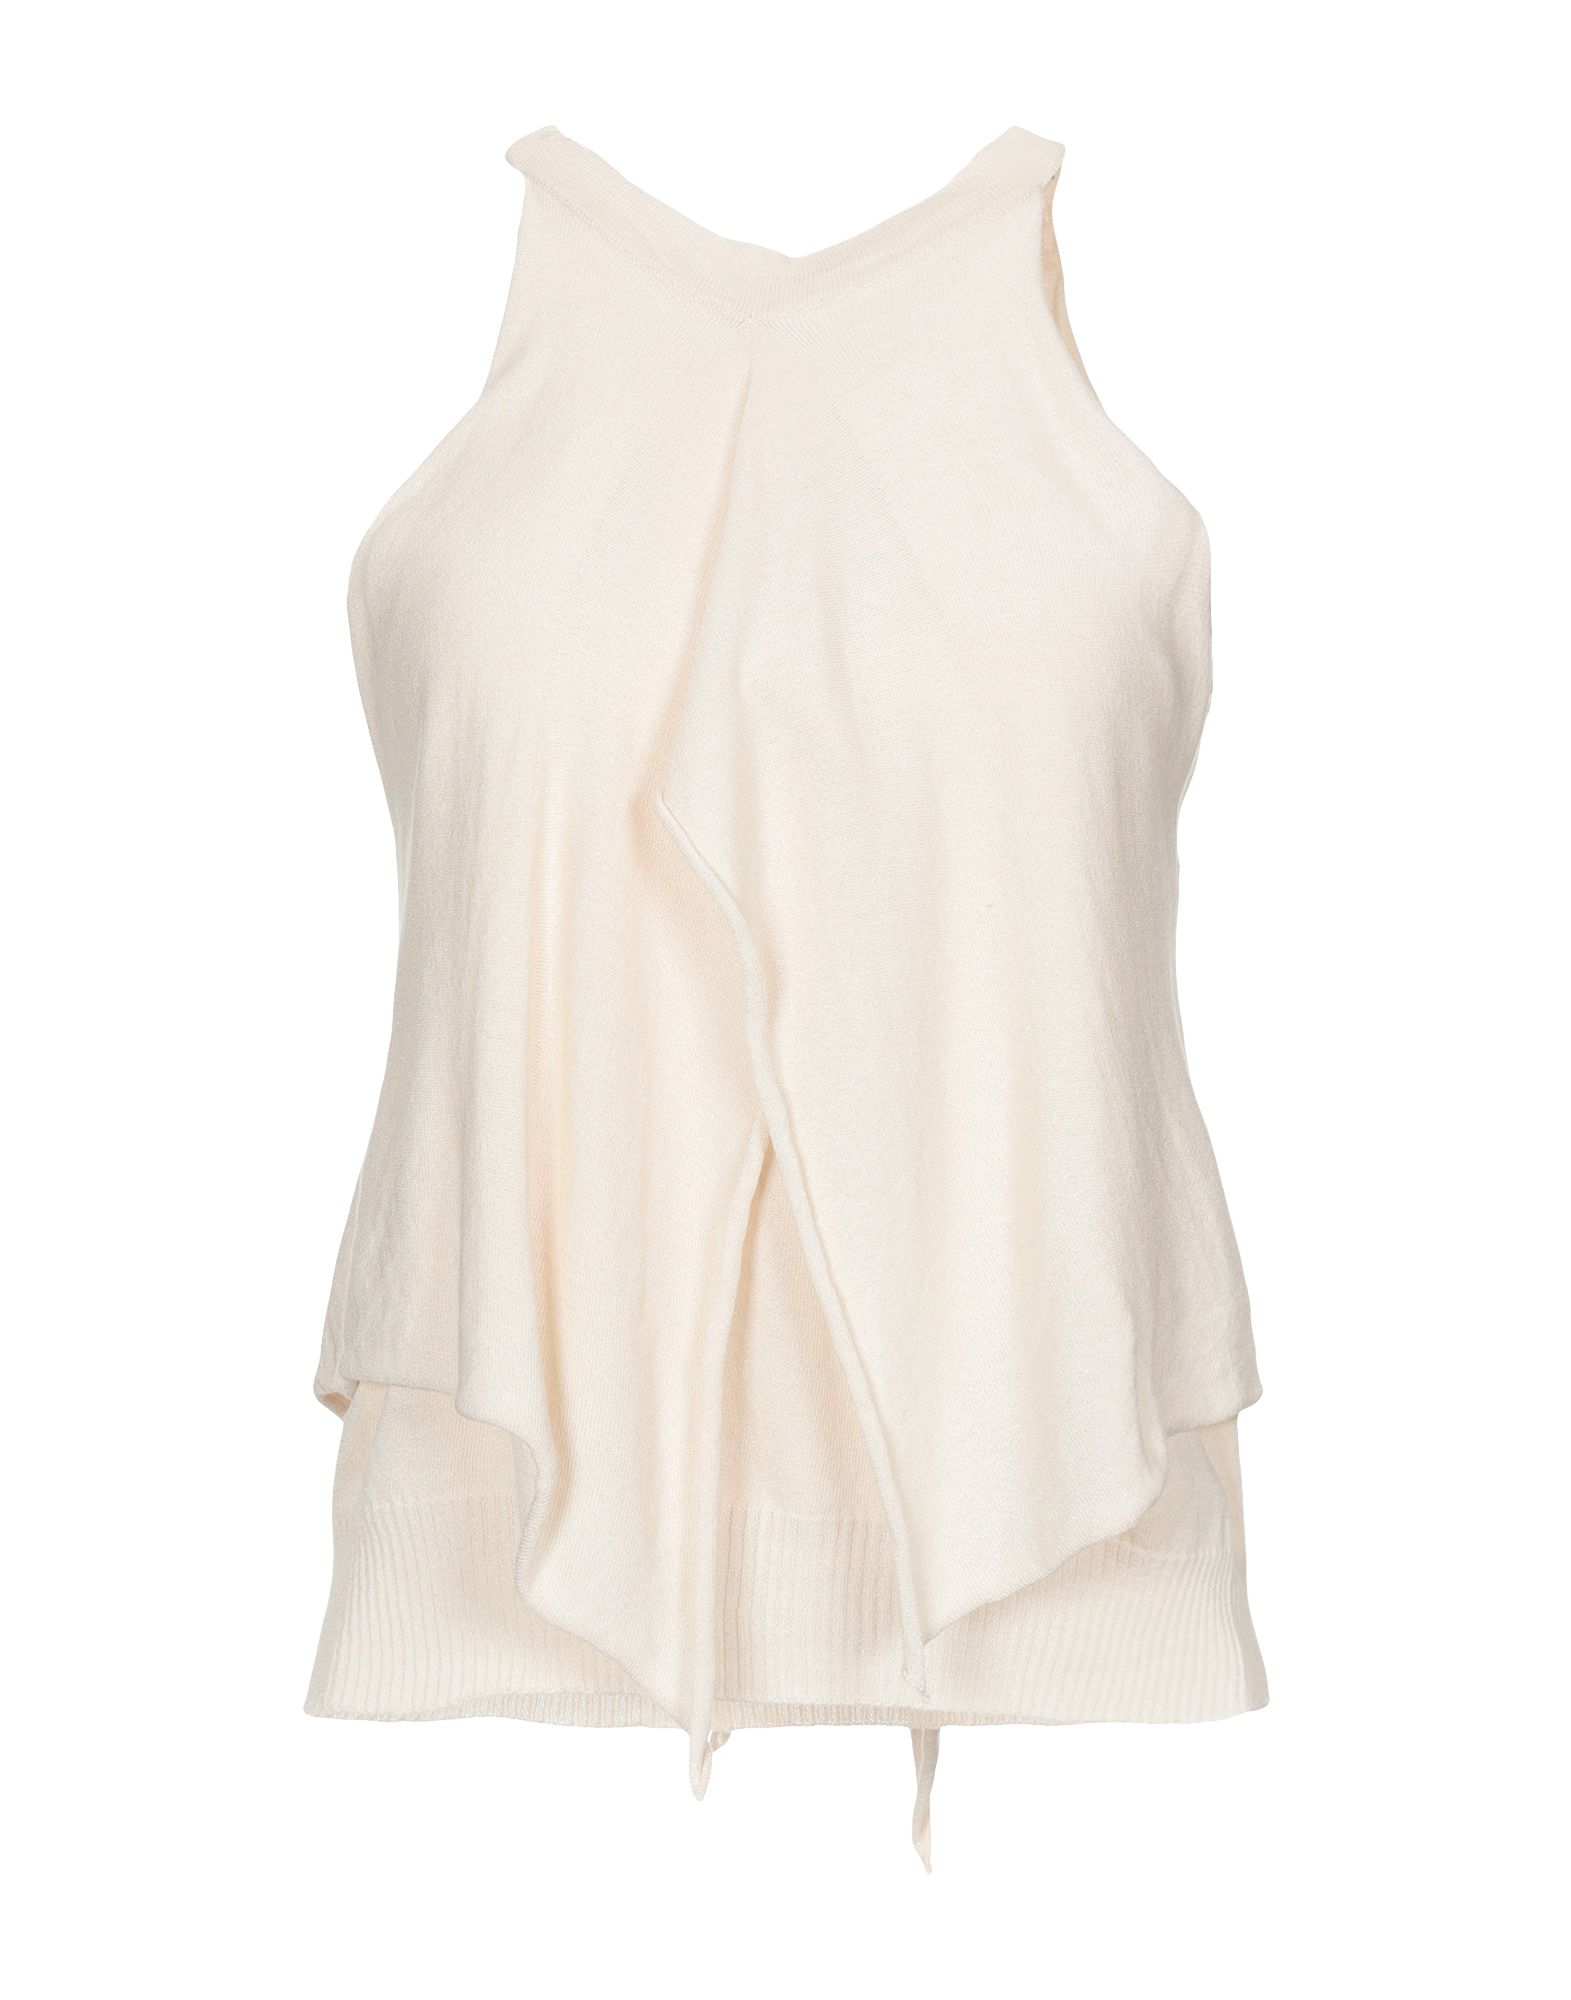 GUESS BY MARCIANO Топ без рукавов топ marciano guess marciano guess ma087ewvpk53